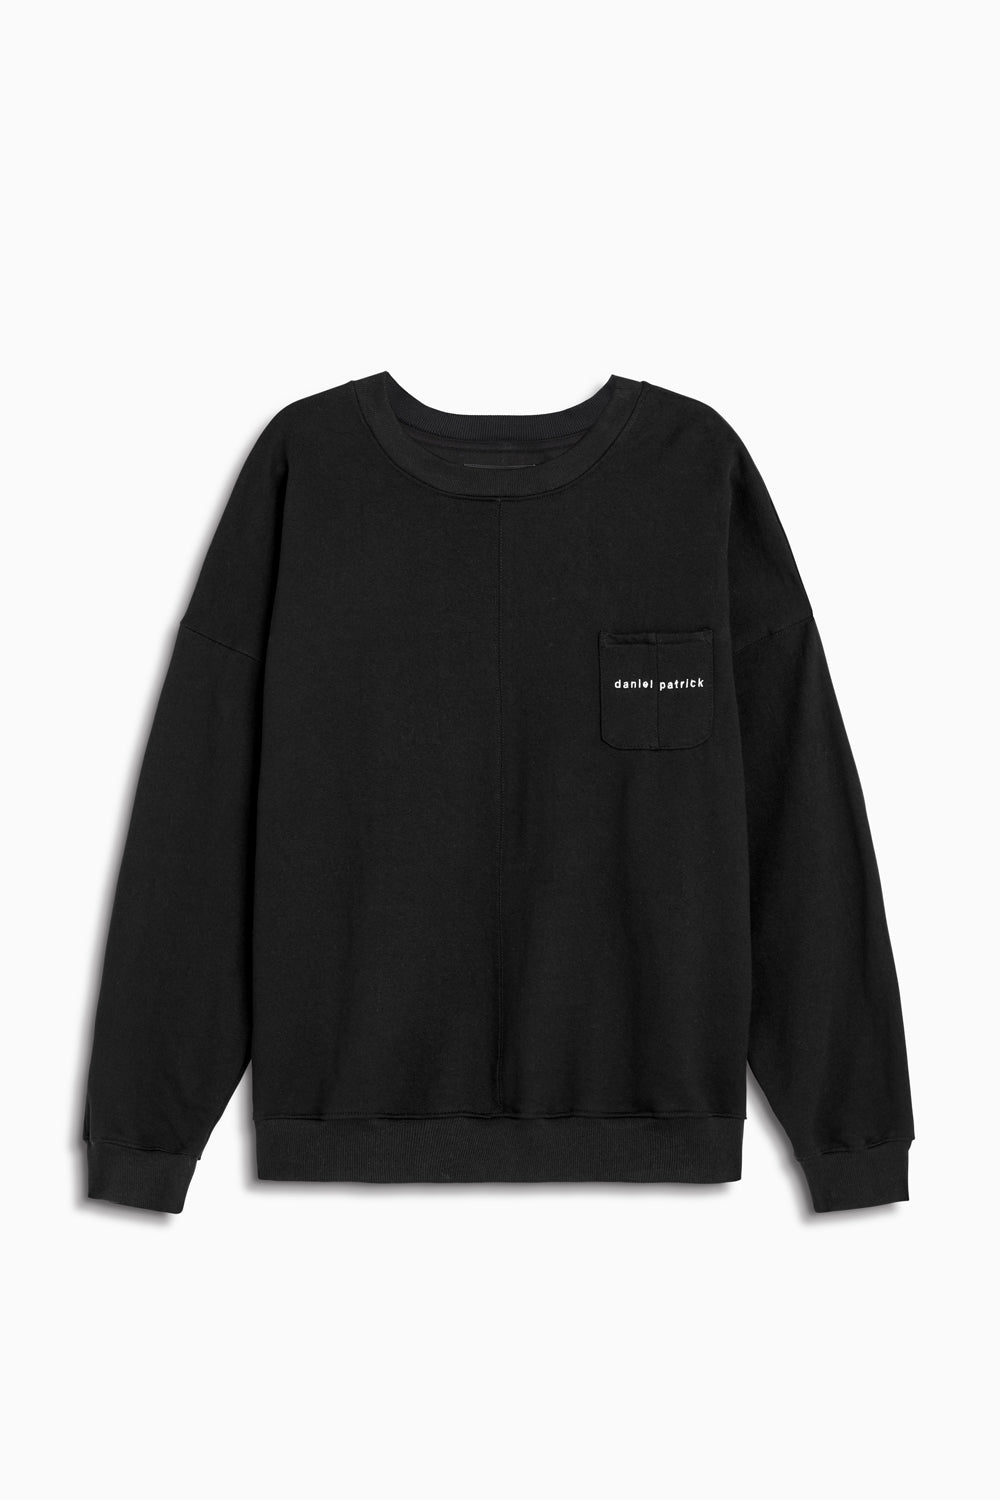 pocket crew sweat in black/natural by daniel patrick